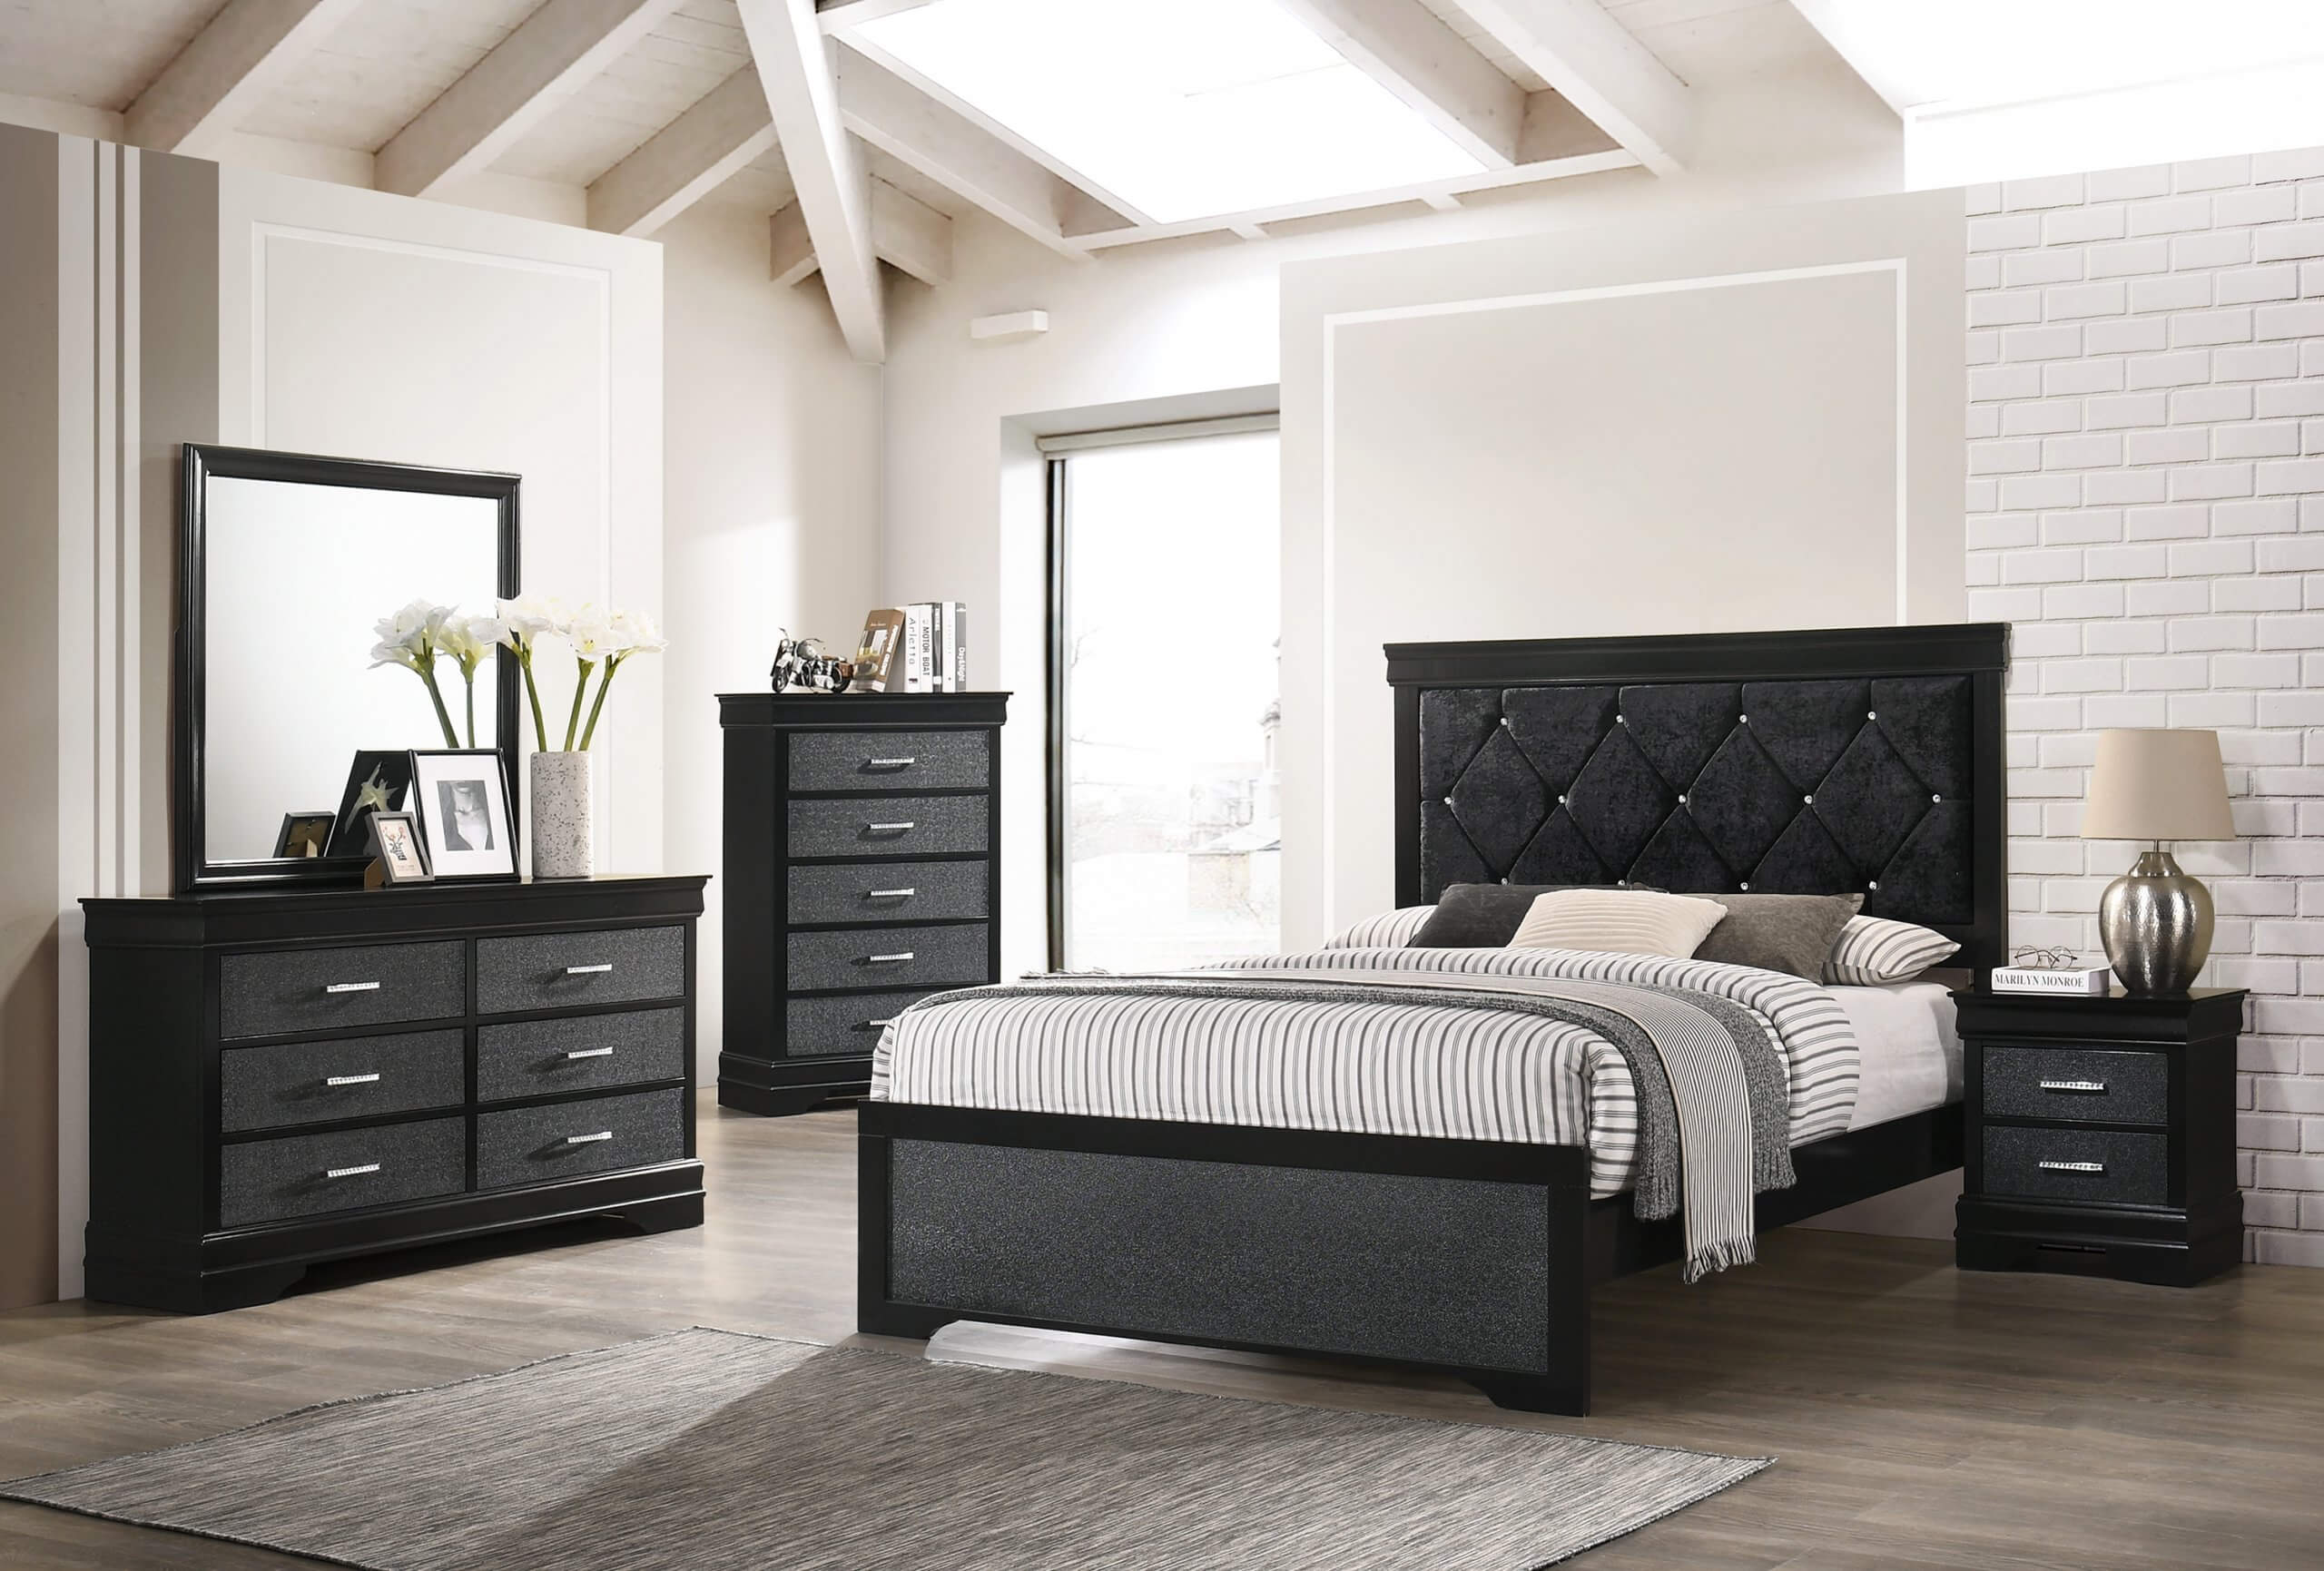 Black Amalia Bedroom Set Kids Bedroom Sets